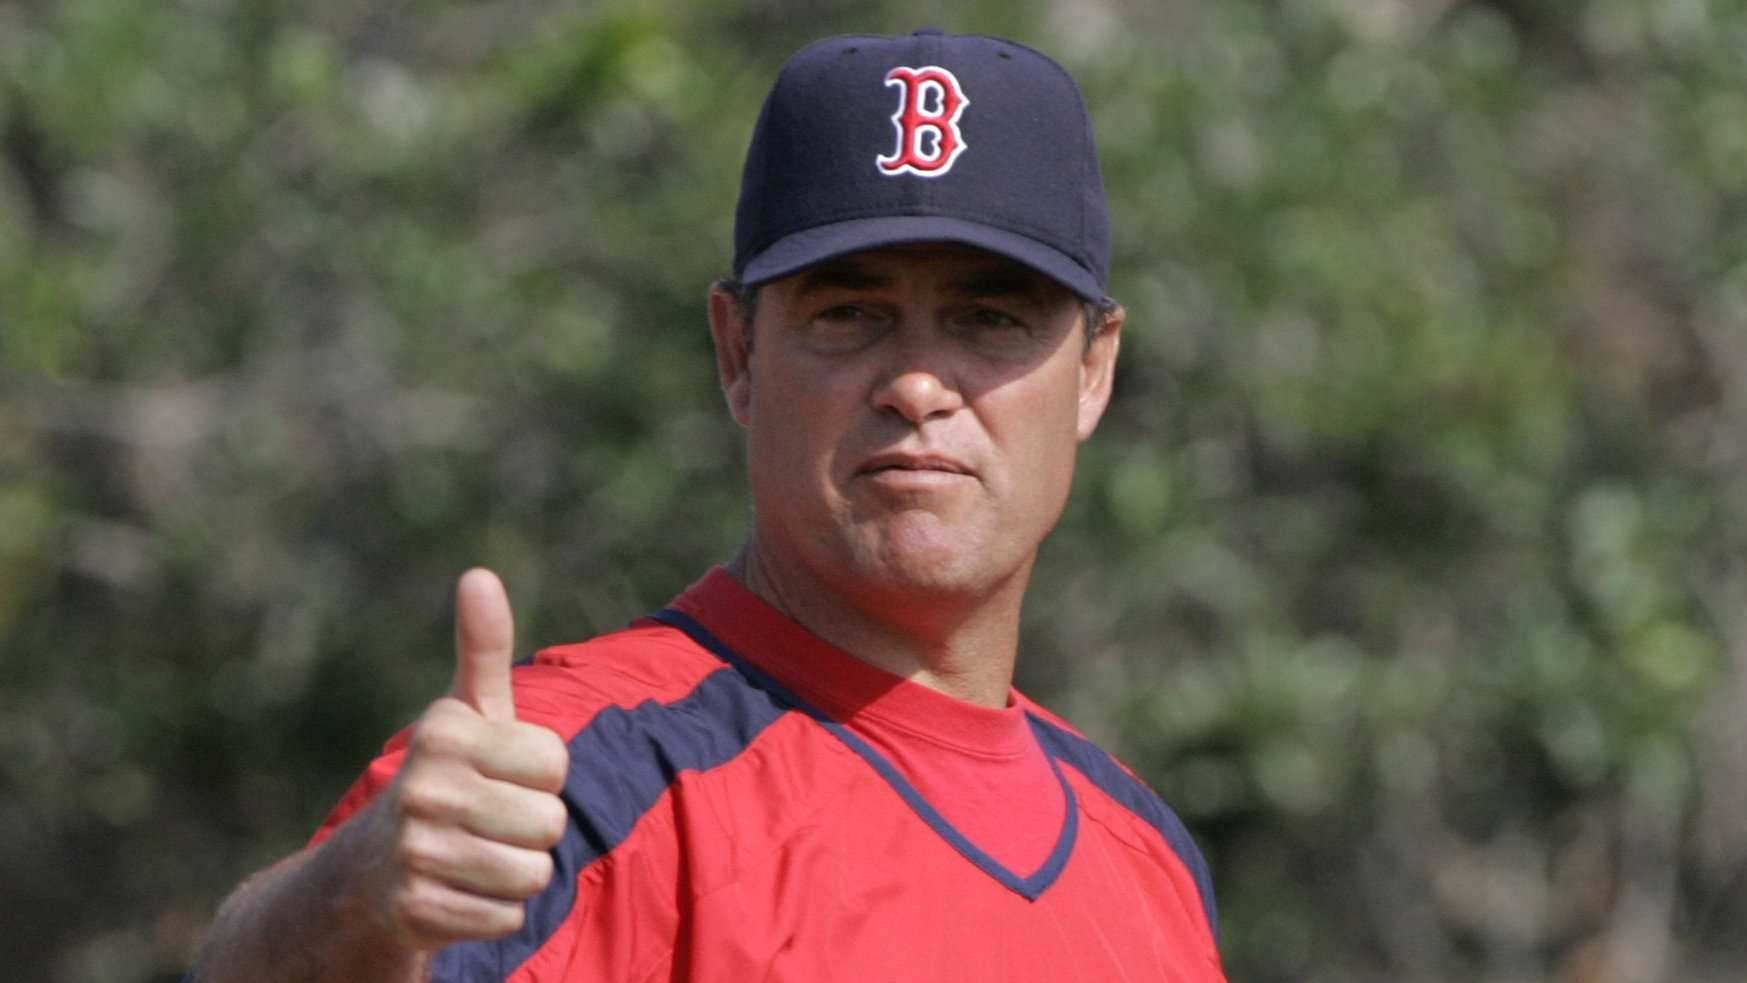 50-year-old John Farrell will be in the Red Sox dugout next year as manager of the team,succeedingBobby Valentine. The Red Sox came to a multiyear agreement with Farrell, who is no stranger to the organization.